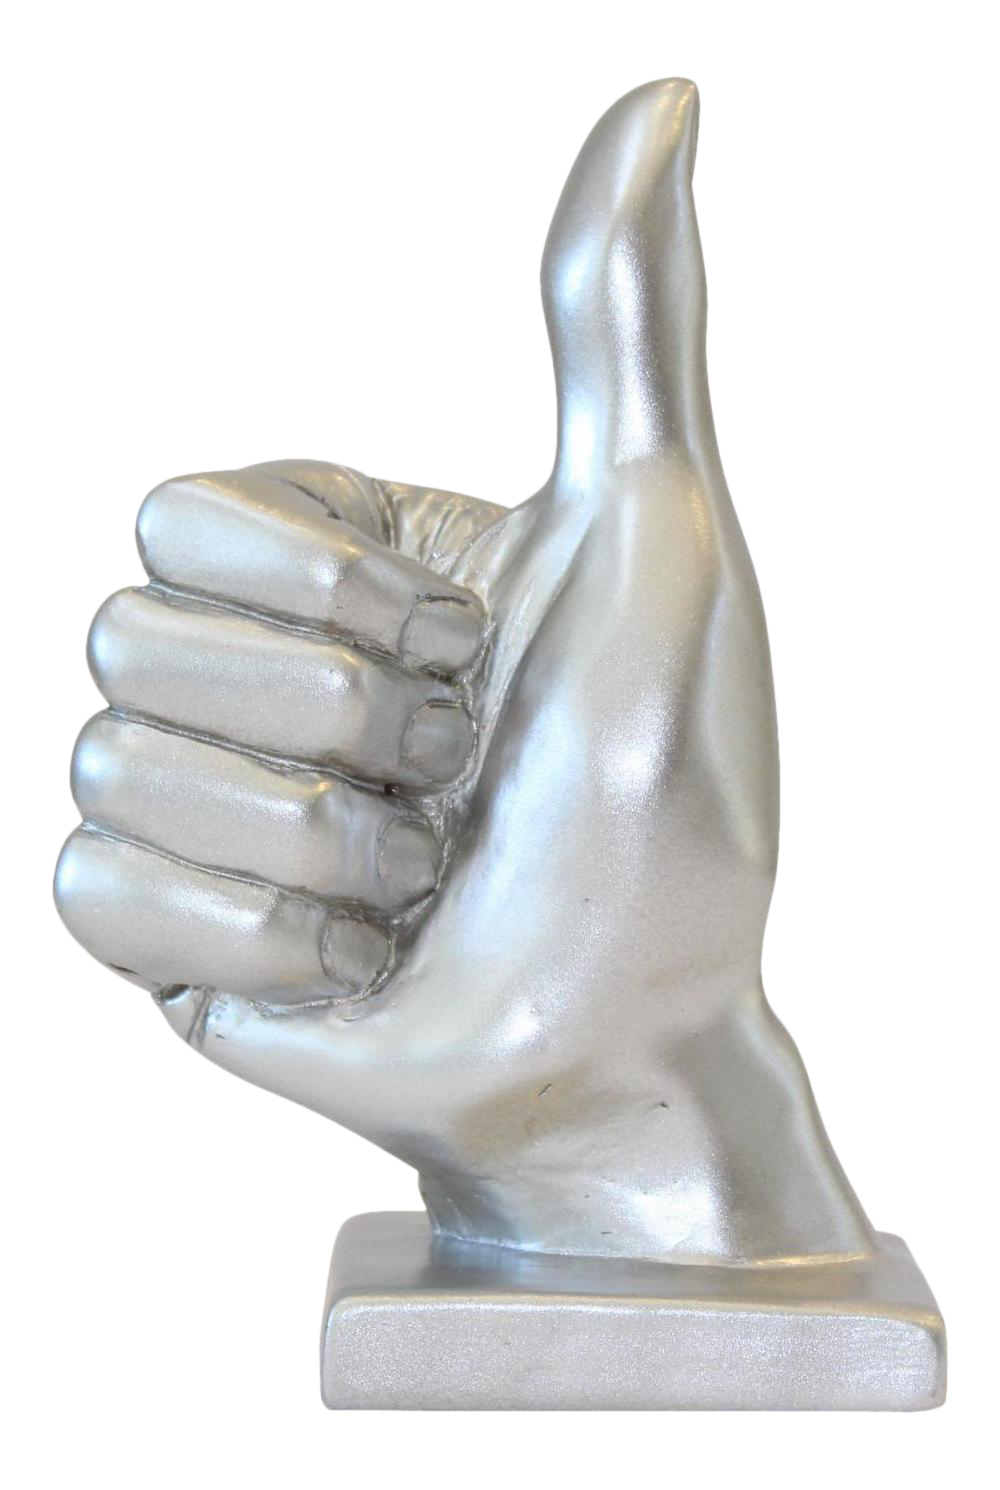 Stone hand png. Silver thumbs up sculpture